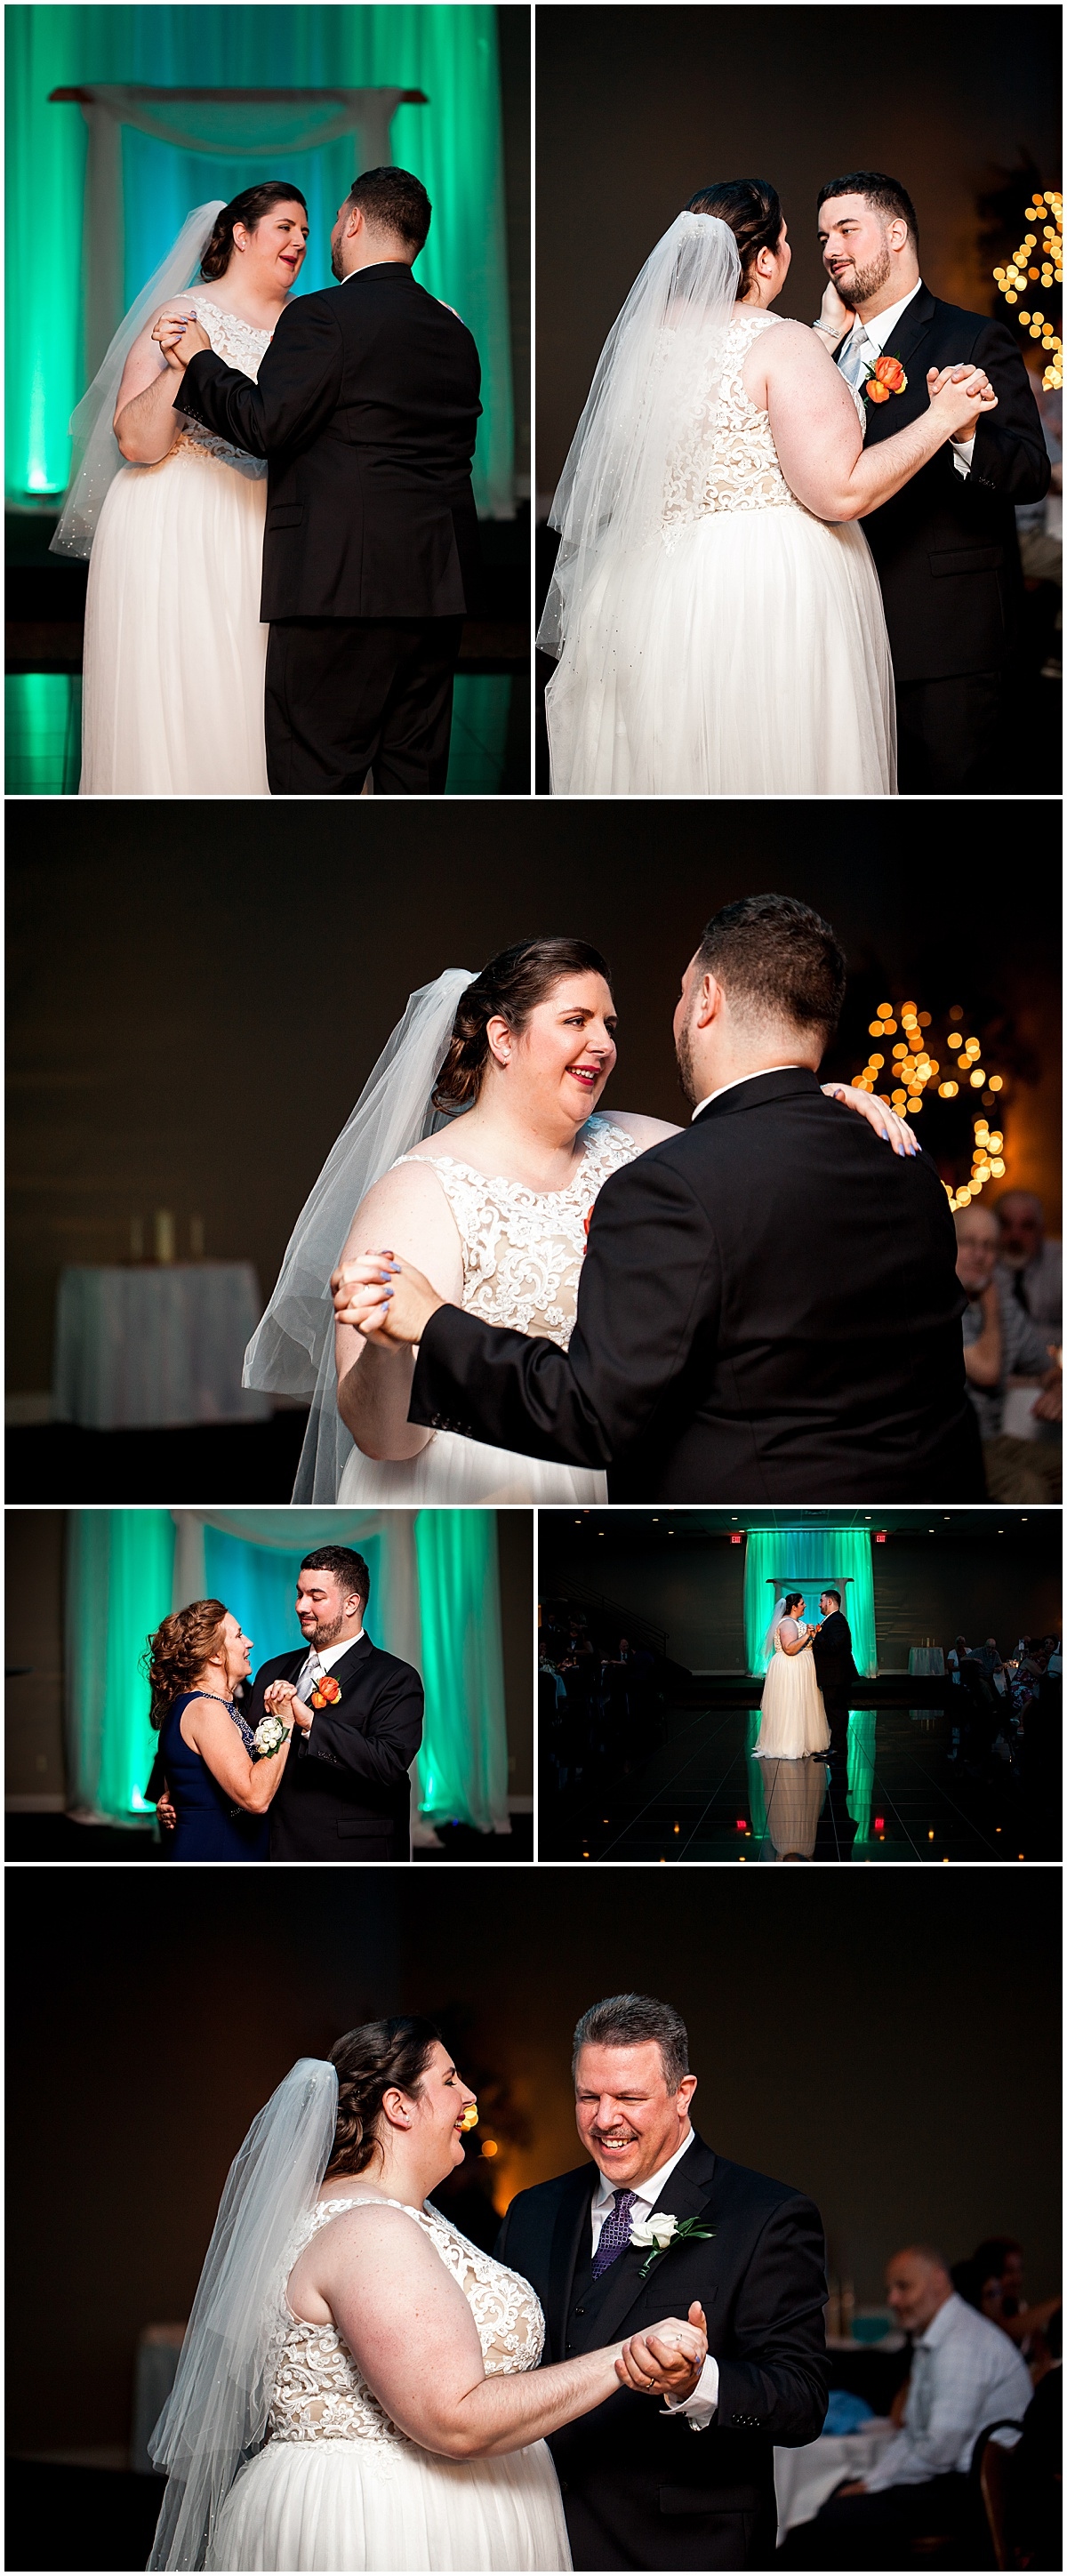 lexus and dan first dance at the fez liz capuano photography